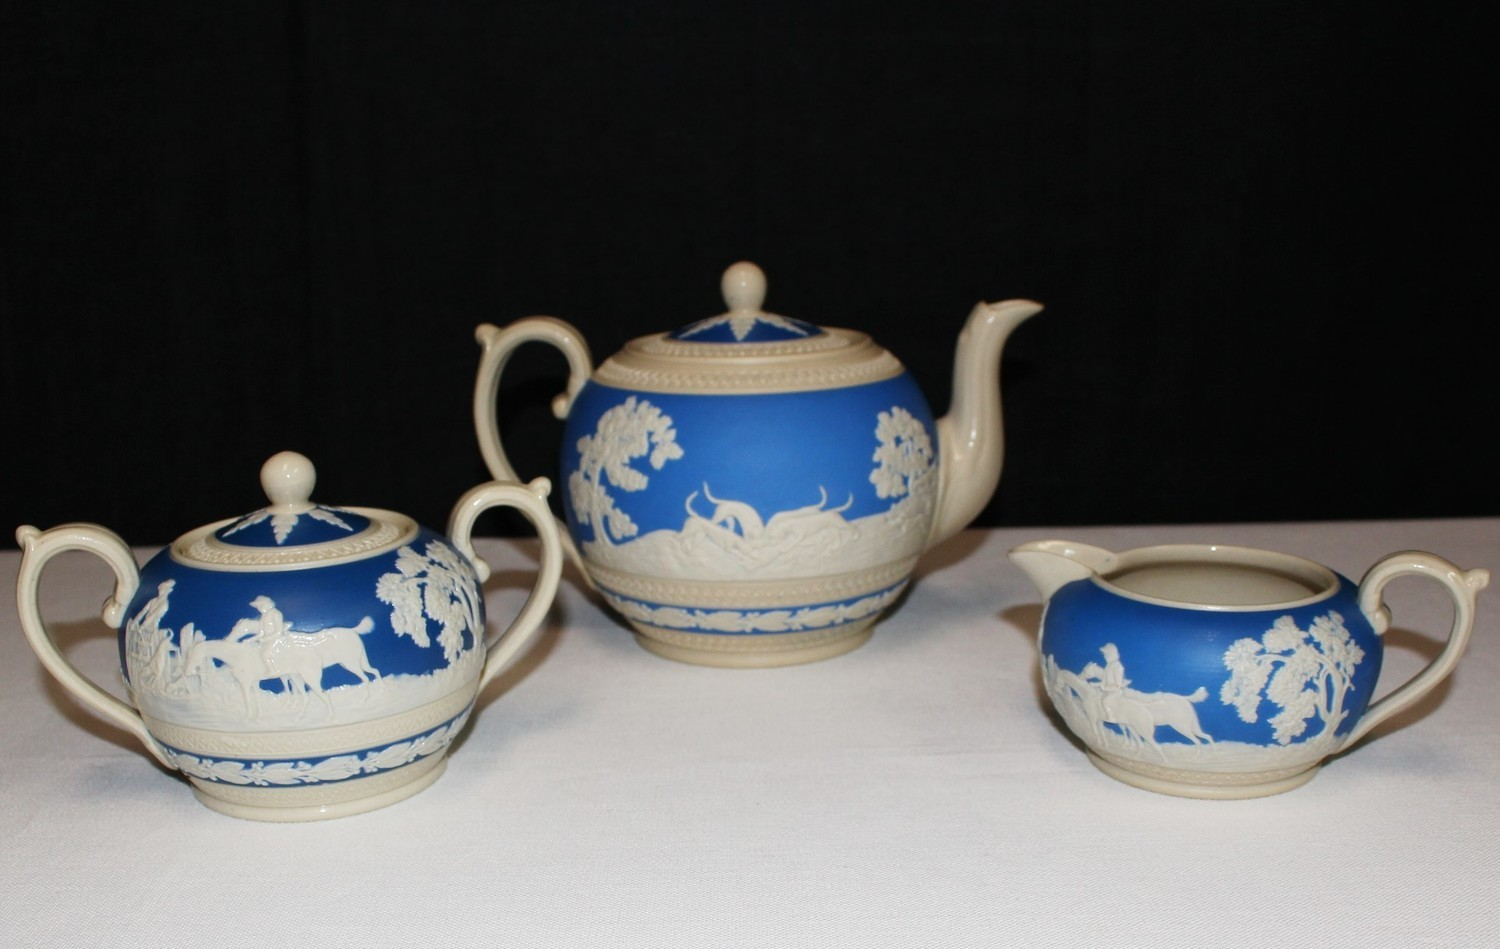 Copeland Spode Blue Fox Hunt Jasper-ware Teapot, Covered Sugar Bowl & Creamer